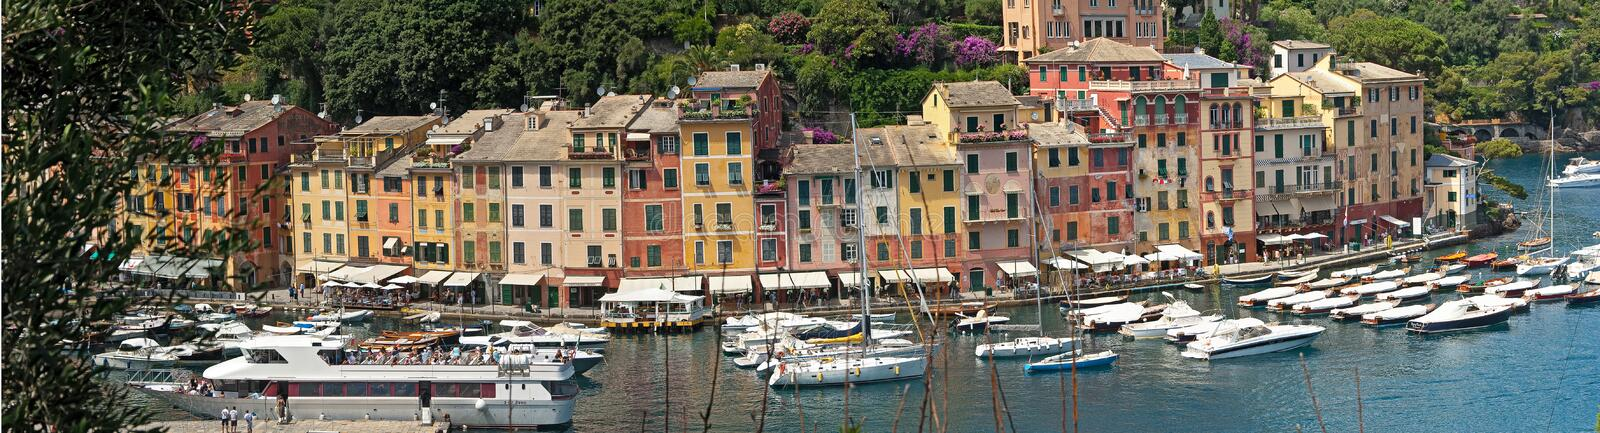 Typical Ligurian houses in the bay of Portofino royalty free stock images